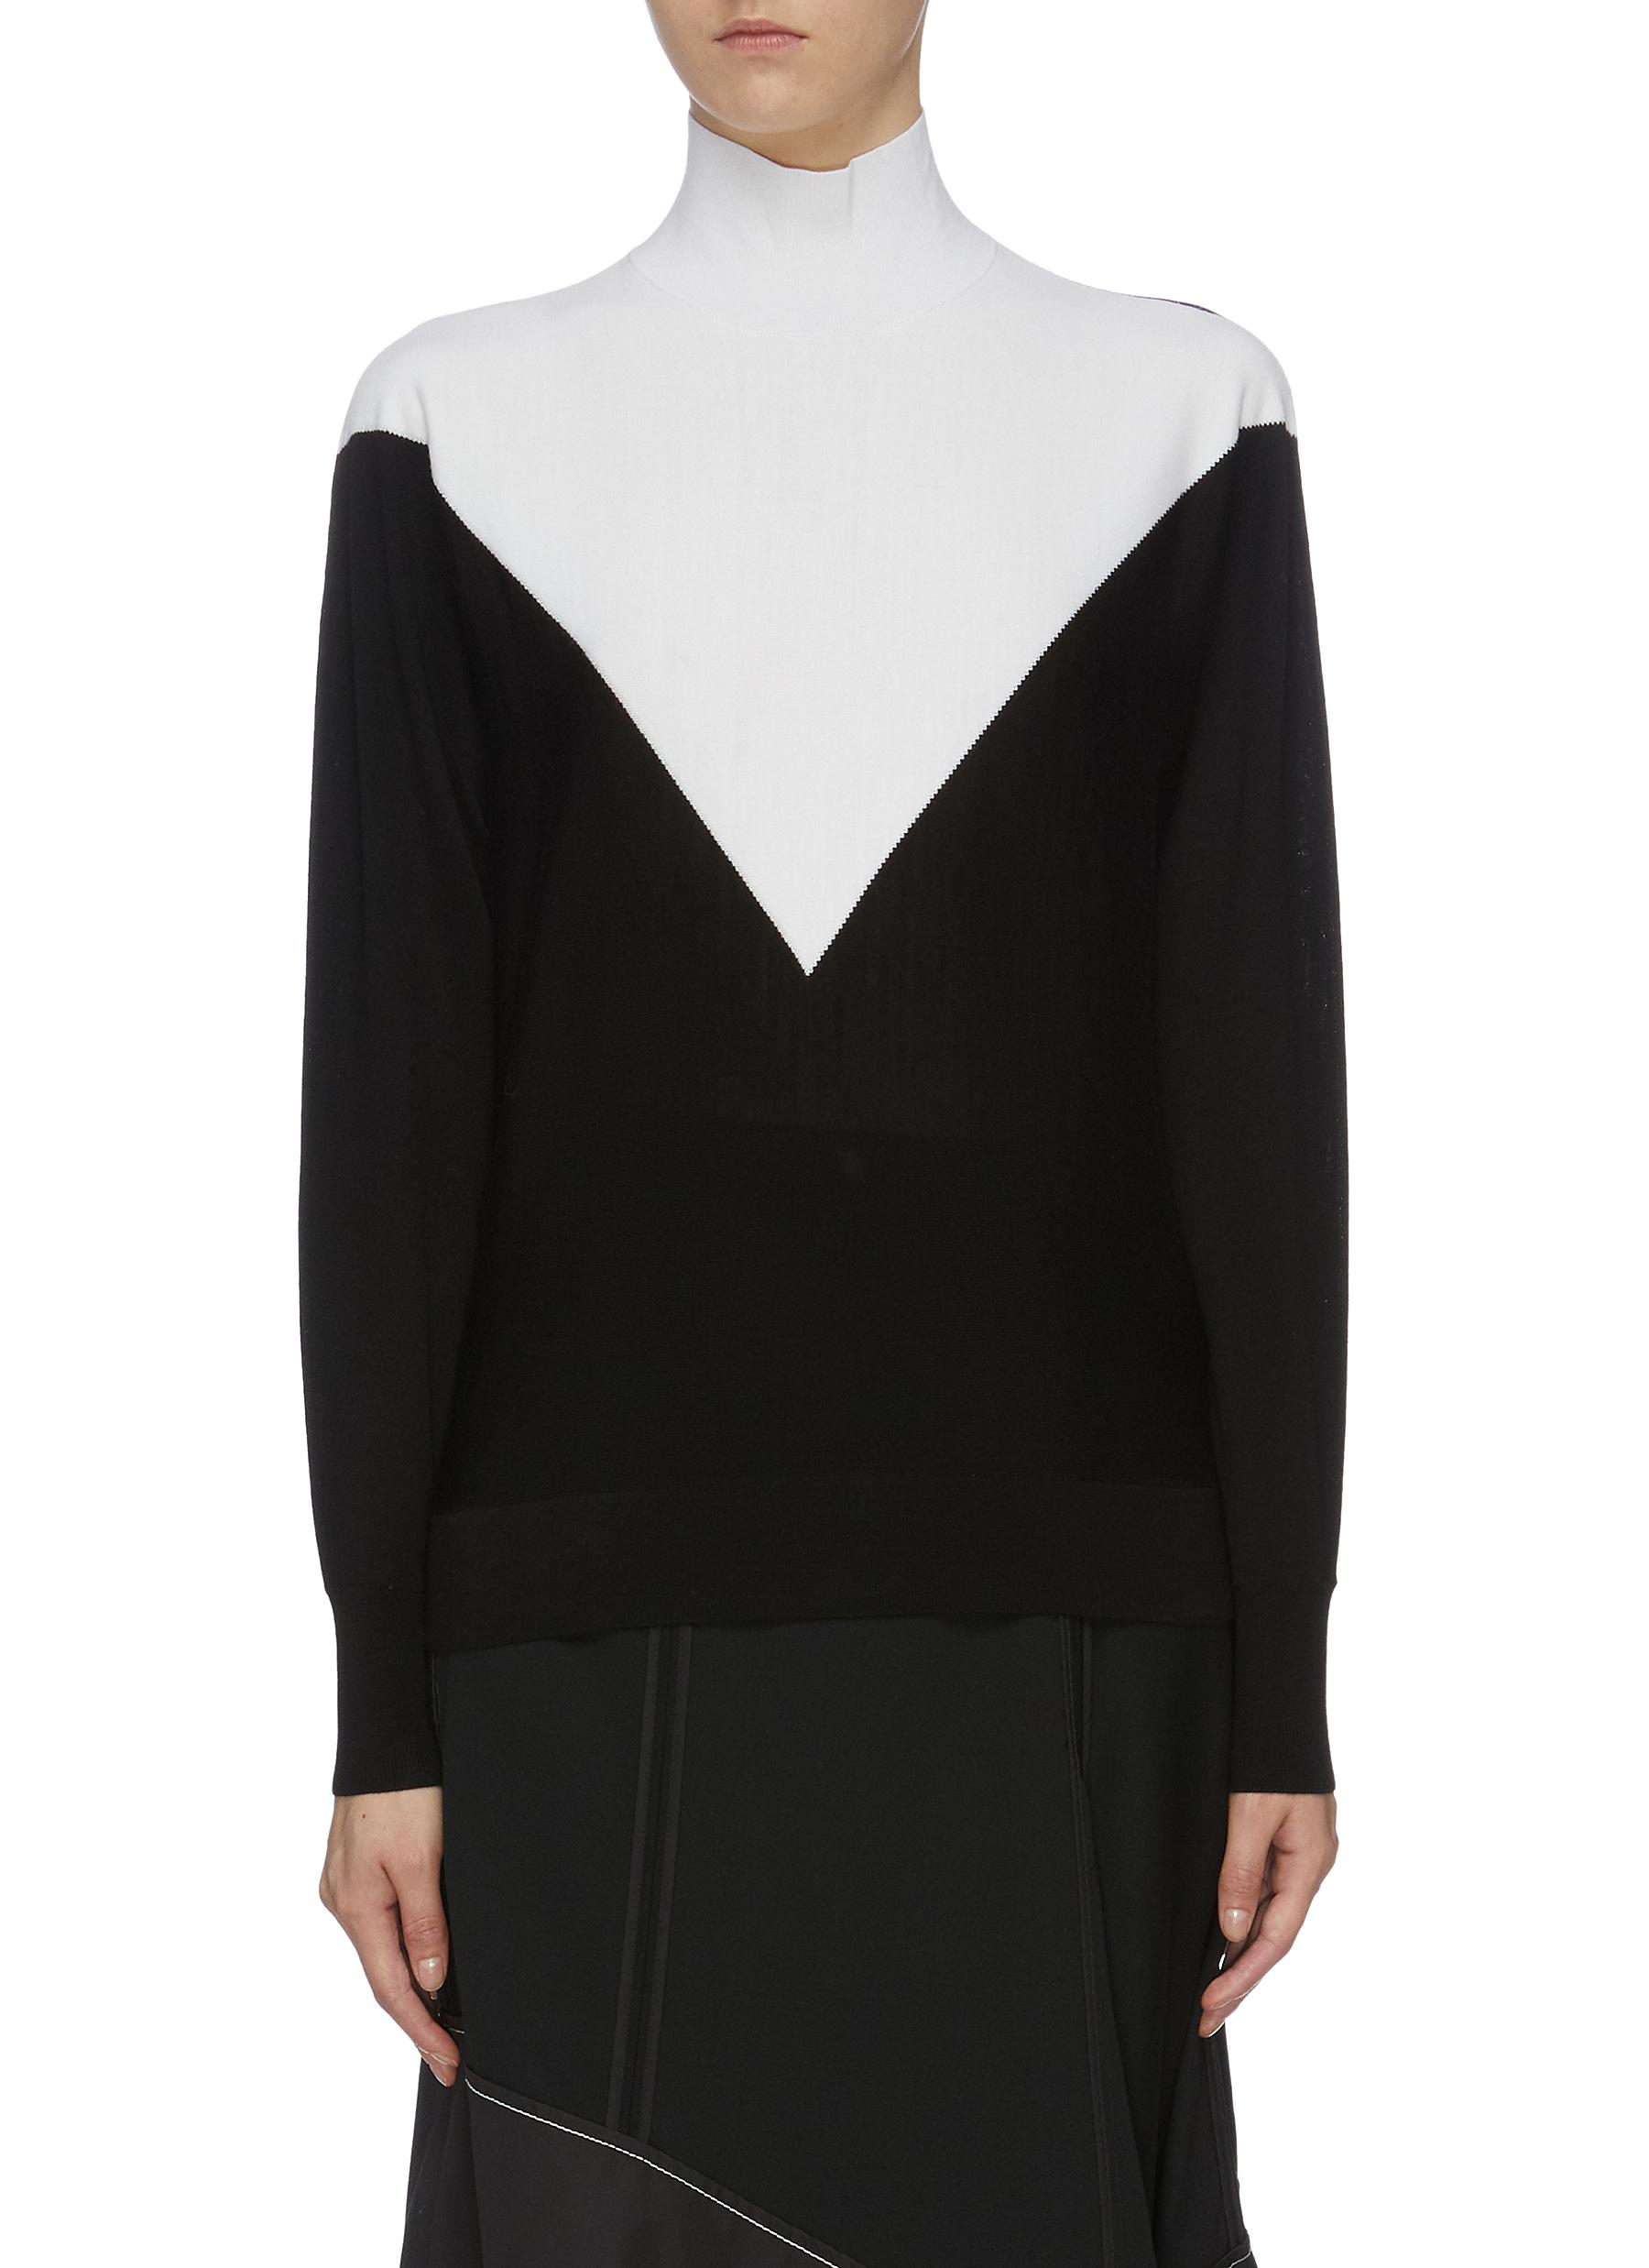 Chevron colourblock wool blend knit turtleneck top by Theory